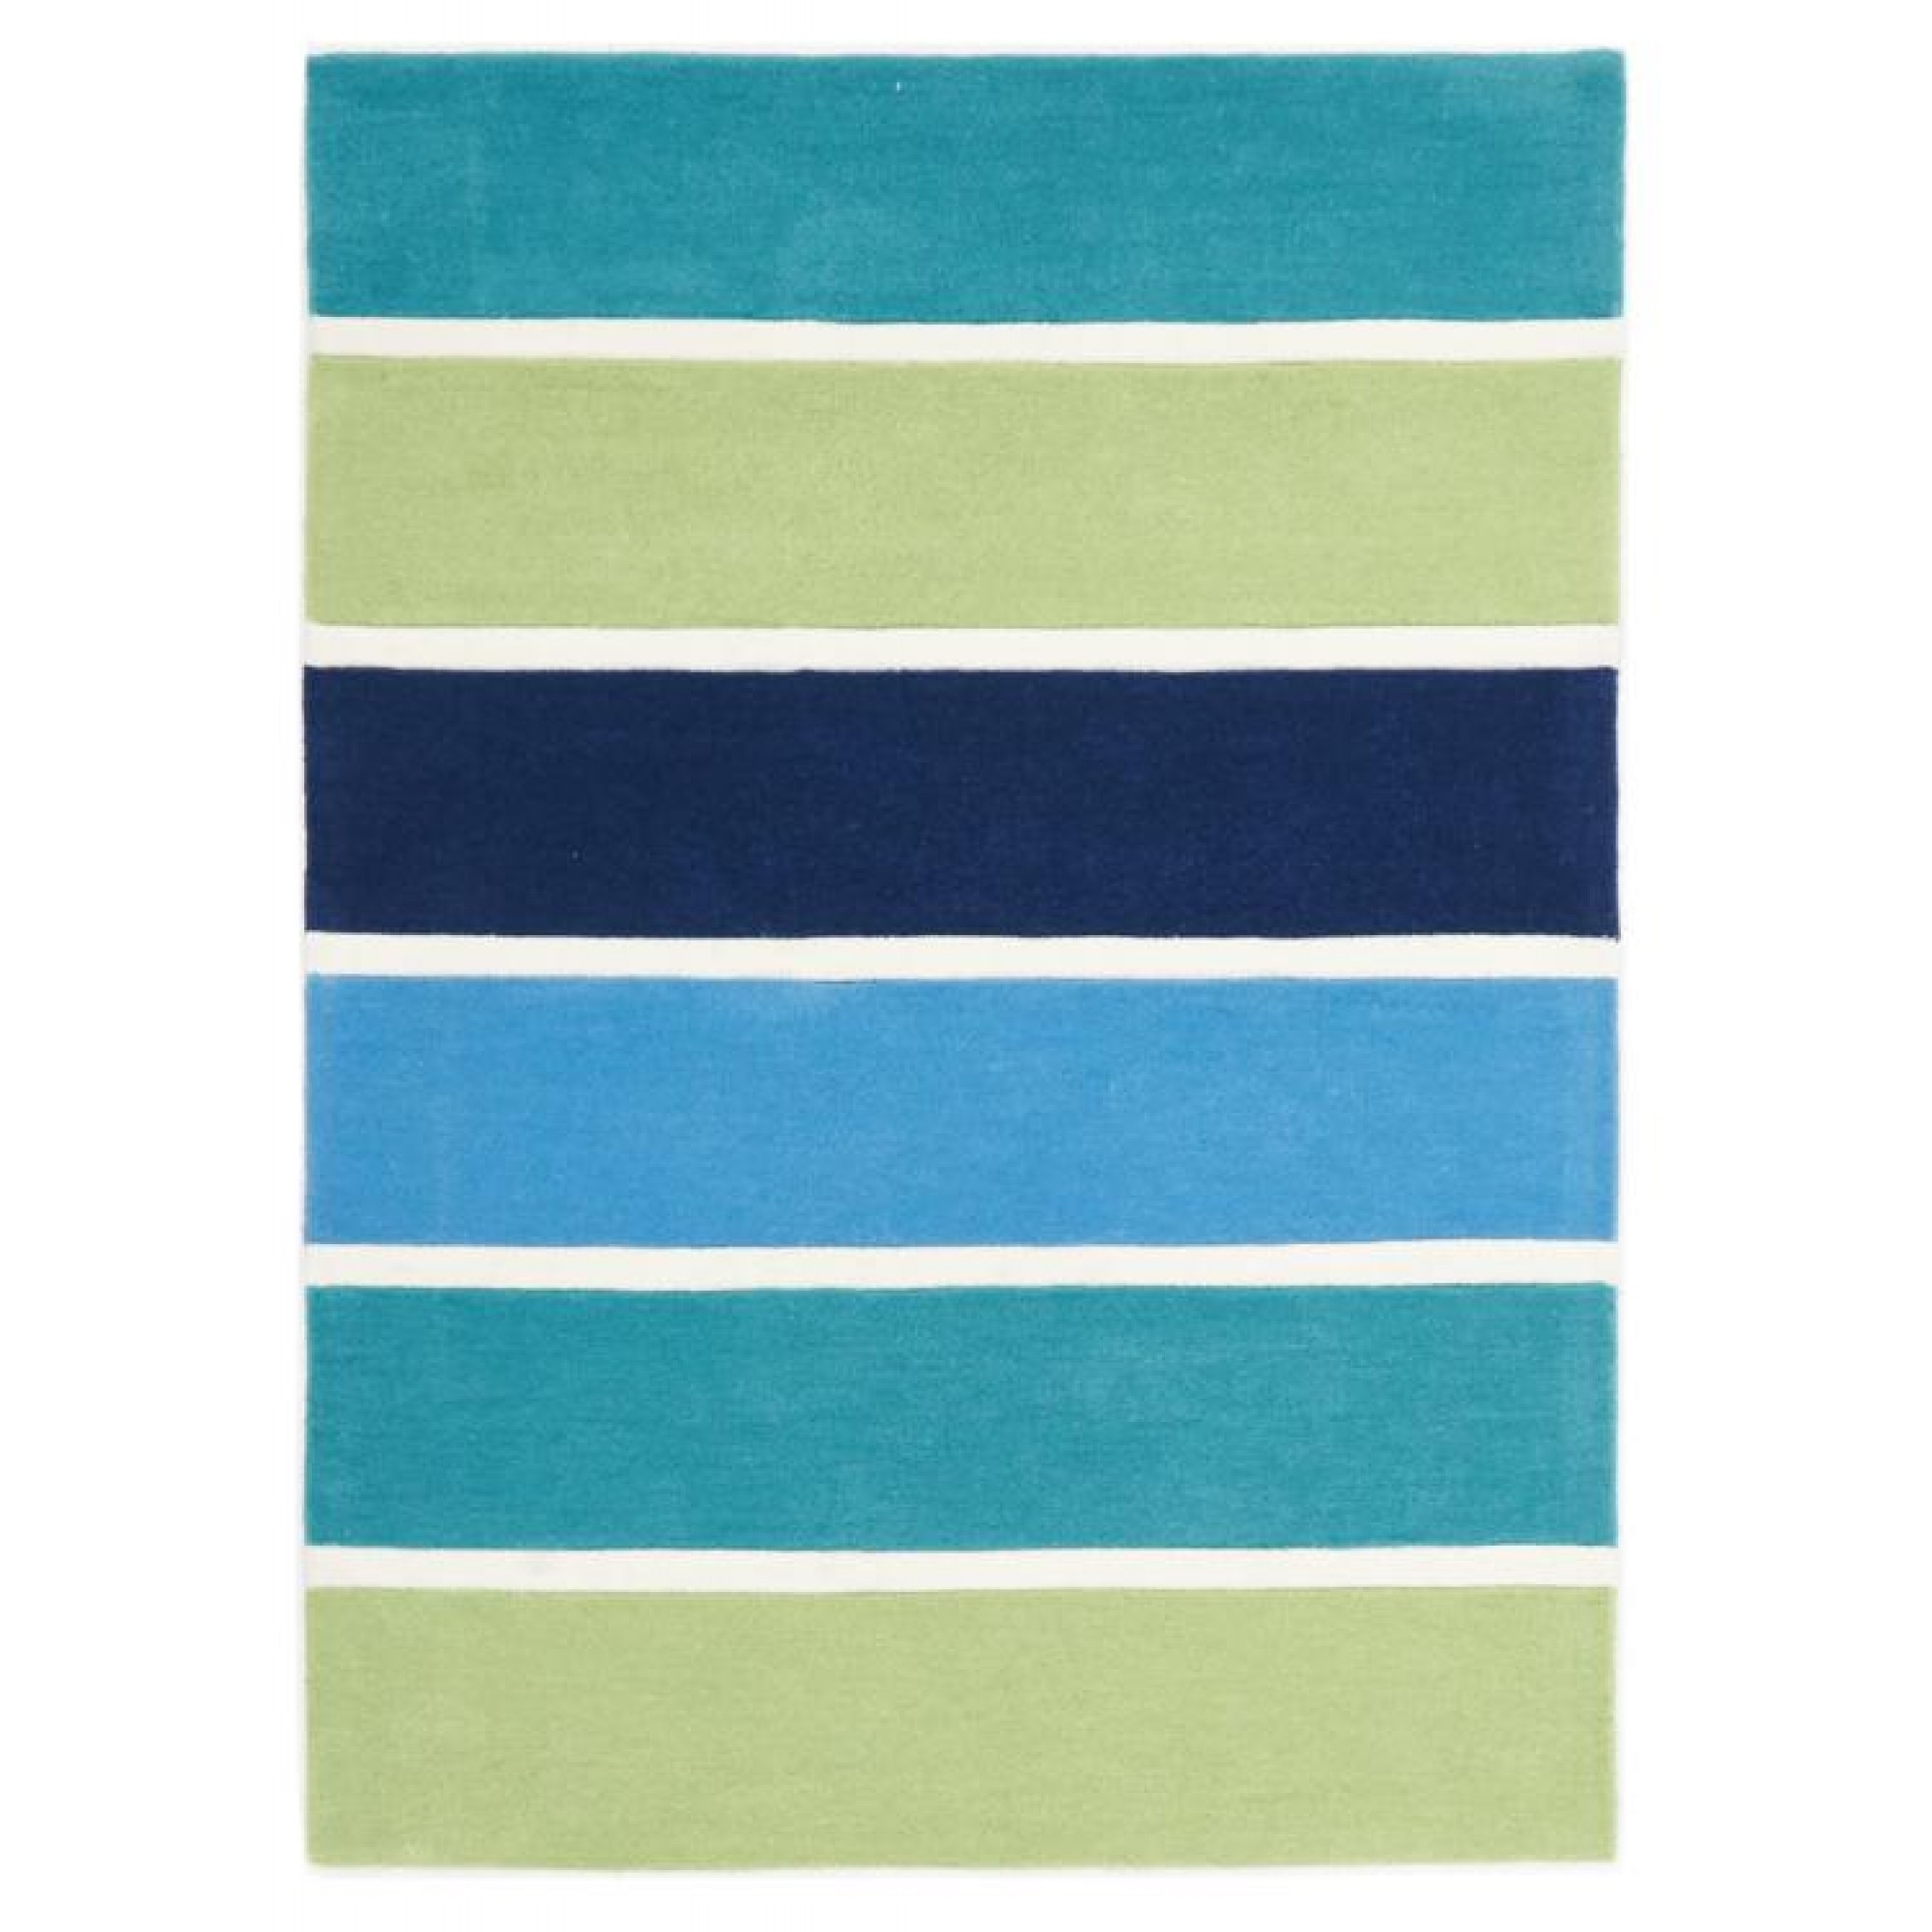 Blue And Green Banded Stripes Kids Floor Rugs Free Shipping Pertaining To Rug Runners Green (#4 of 20)